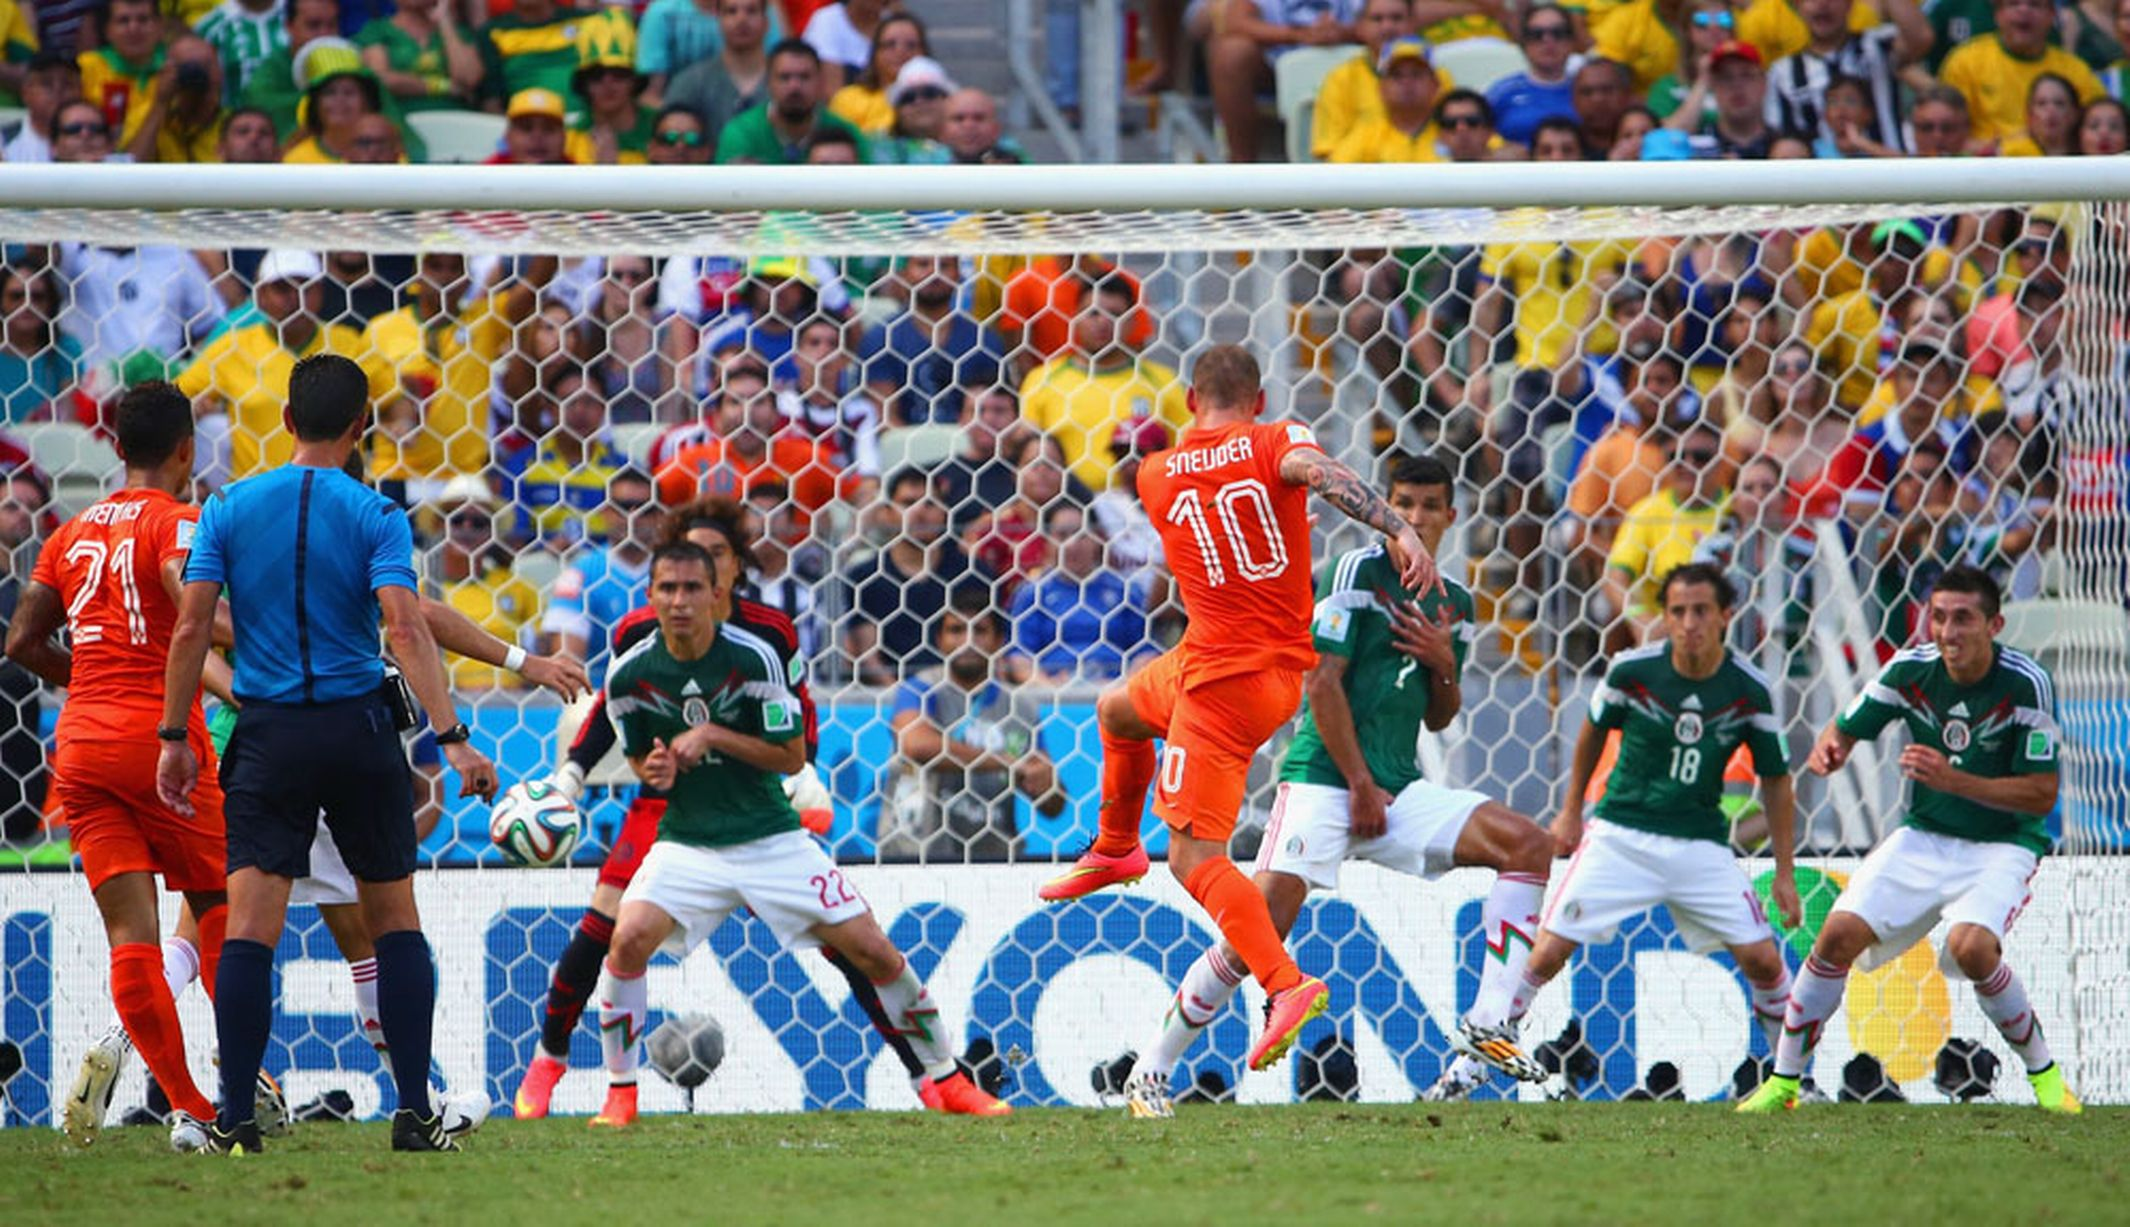 Netherlands-v-Mexico_Huntelaar.jpg